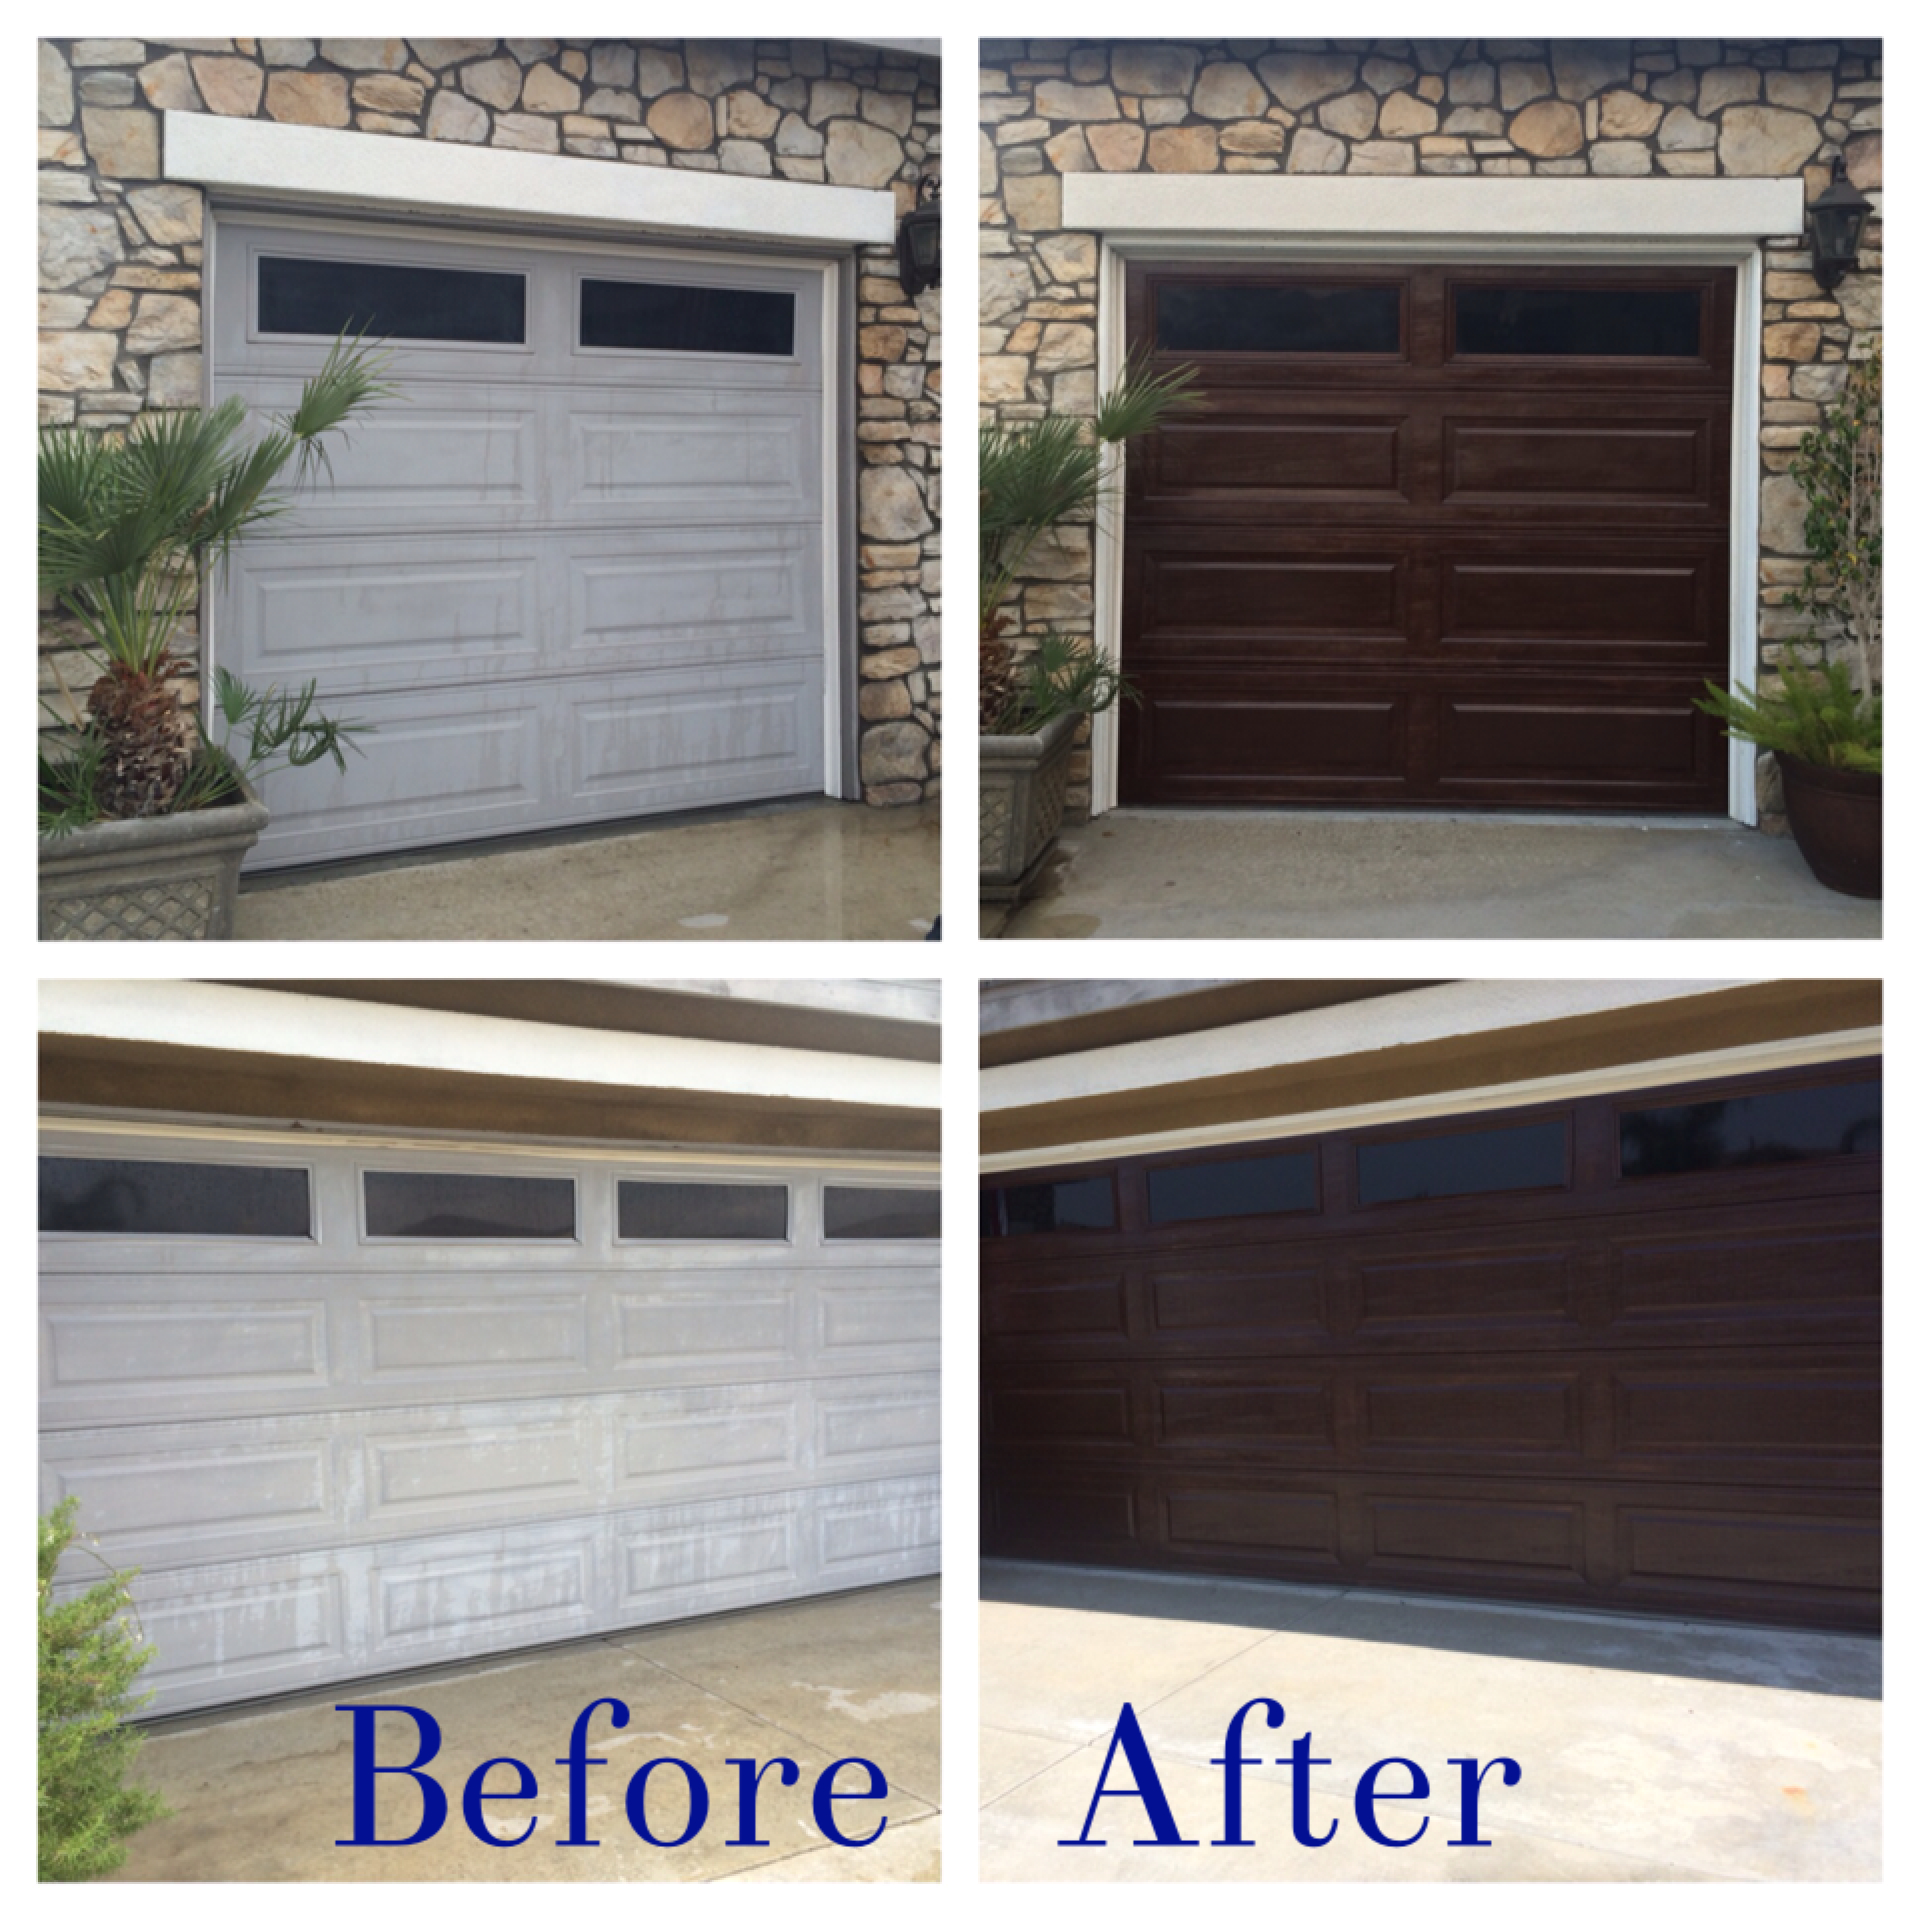 DIY Garage Door makeover using minwax gel stain in Hickory ideas